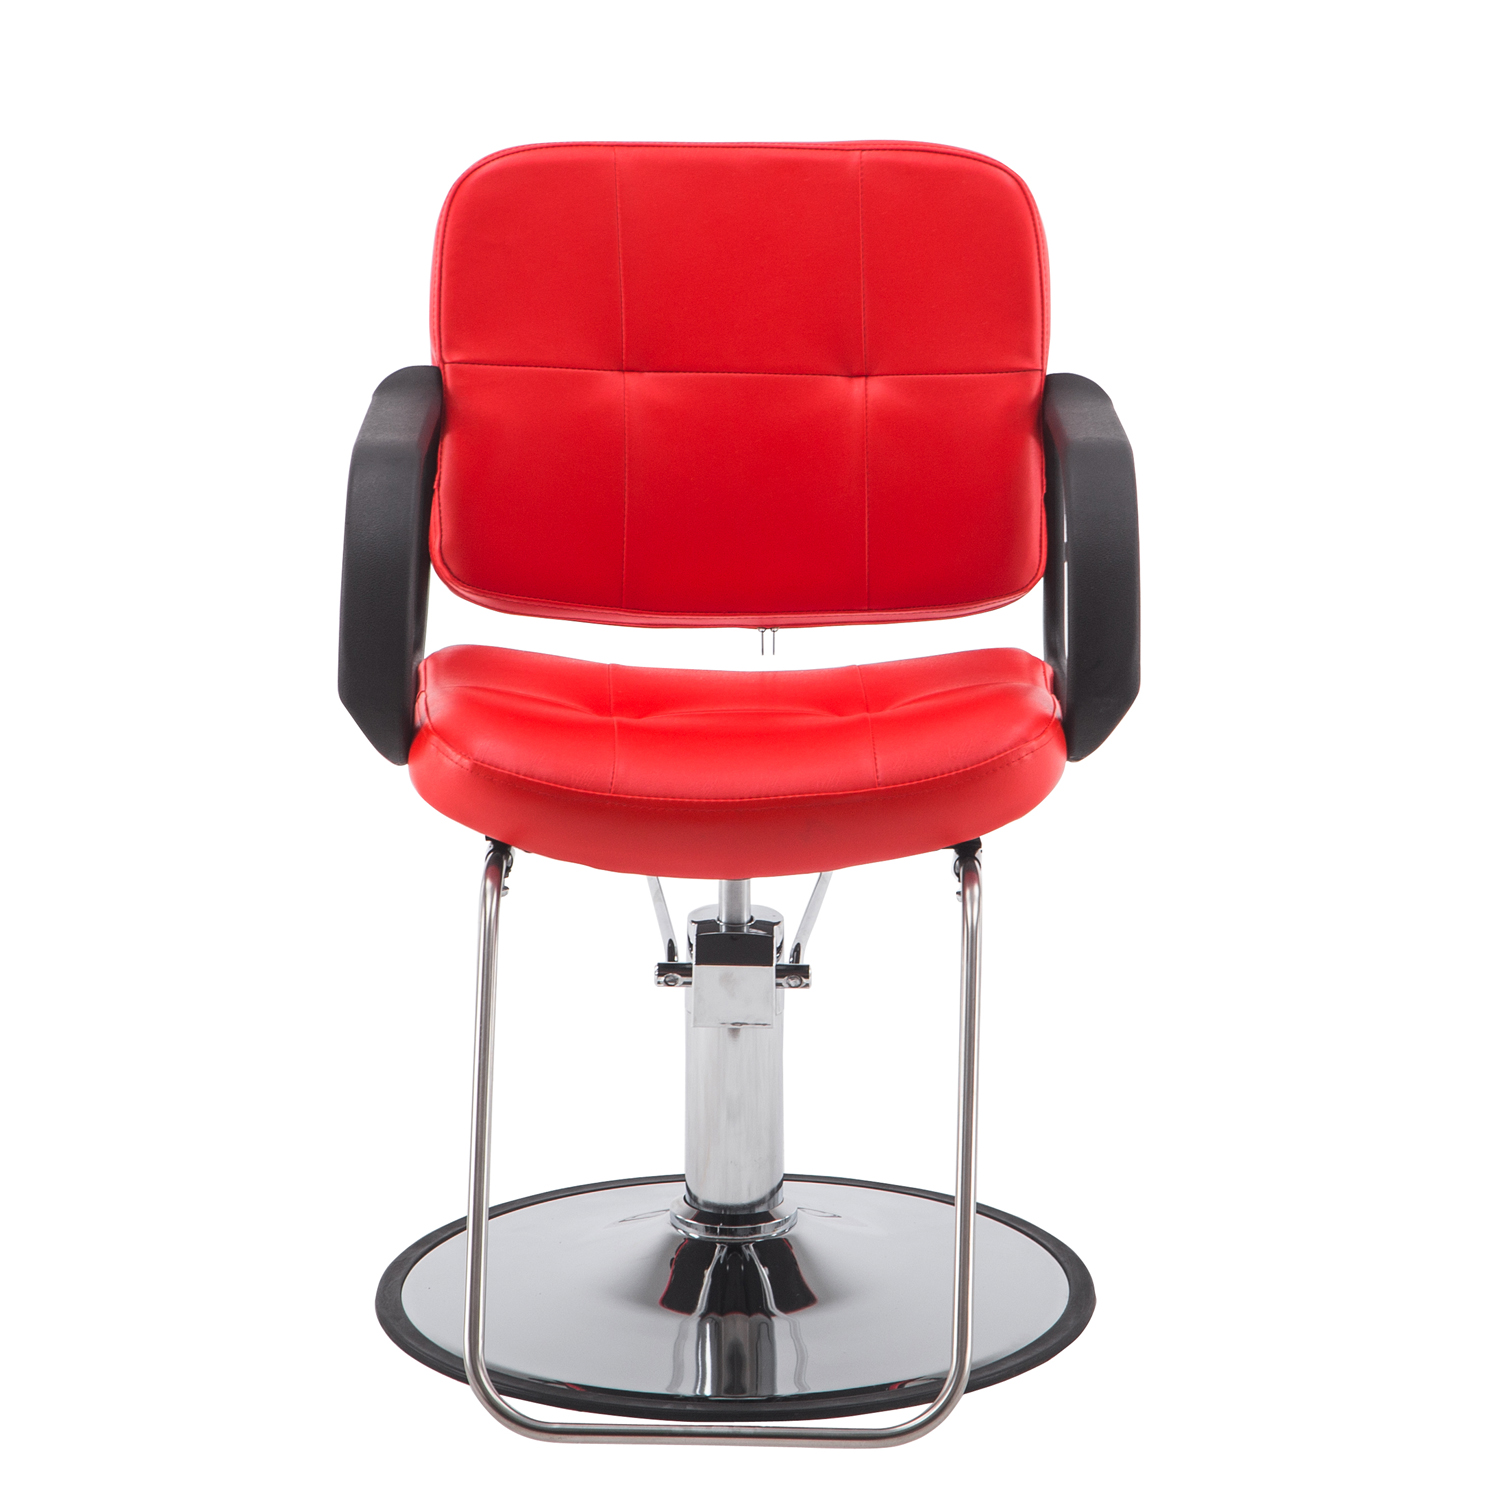 Red Barber Chair Barberpub Classic Hydraulic Barber Chair Salon Beauty Spa Styling Red 8837